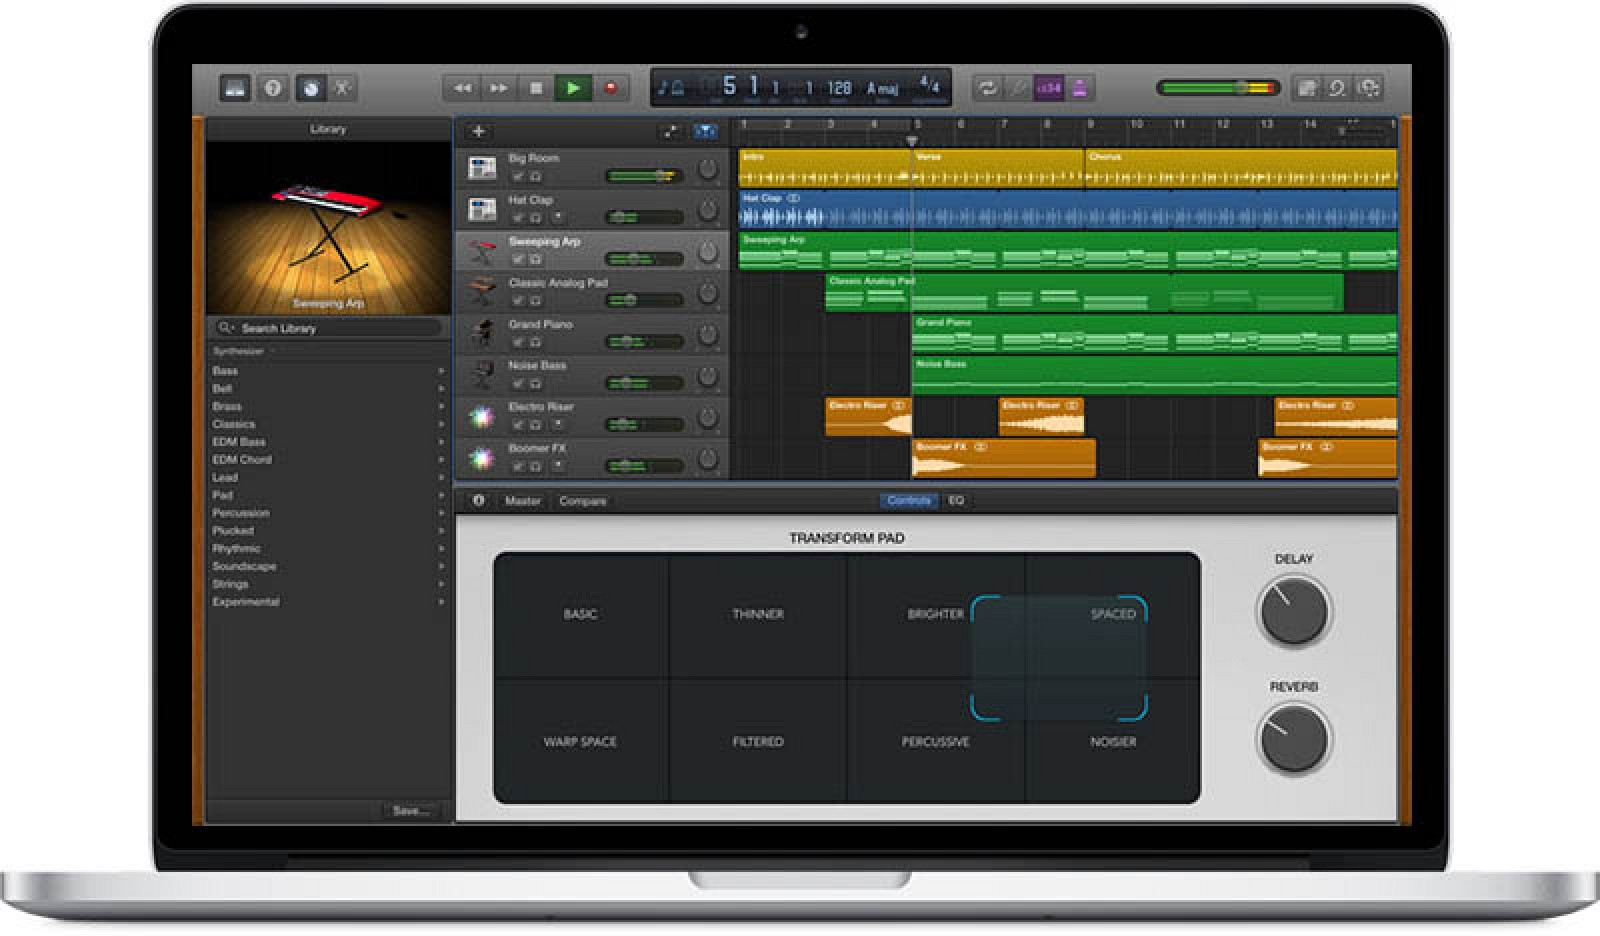 How to make a mixtape on Garage Band